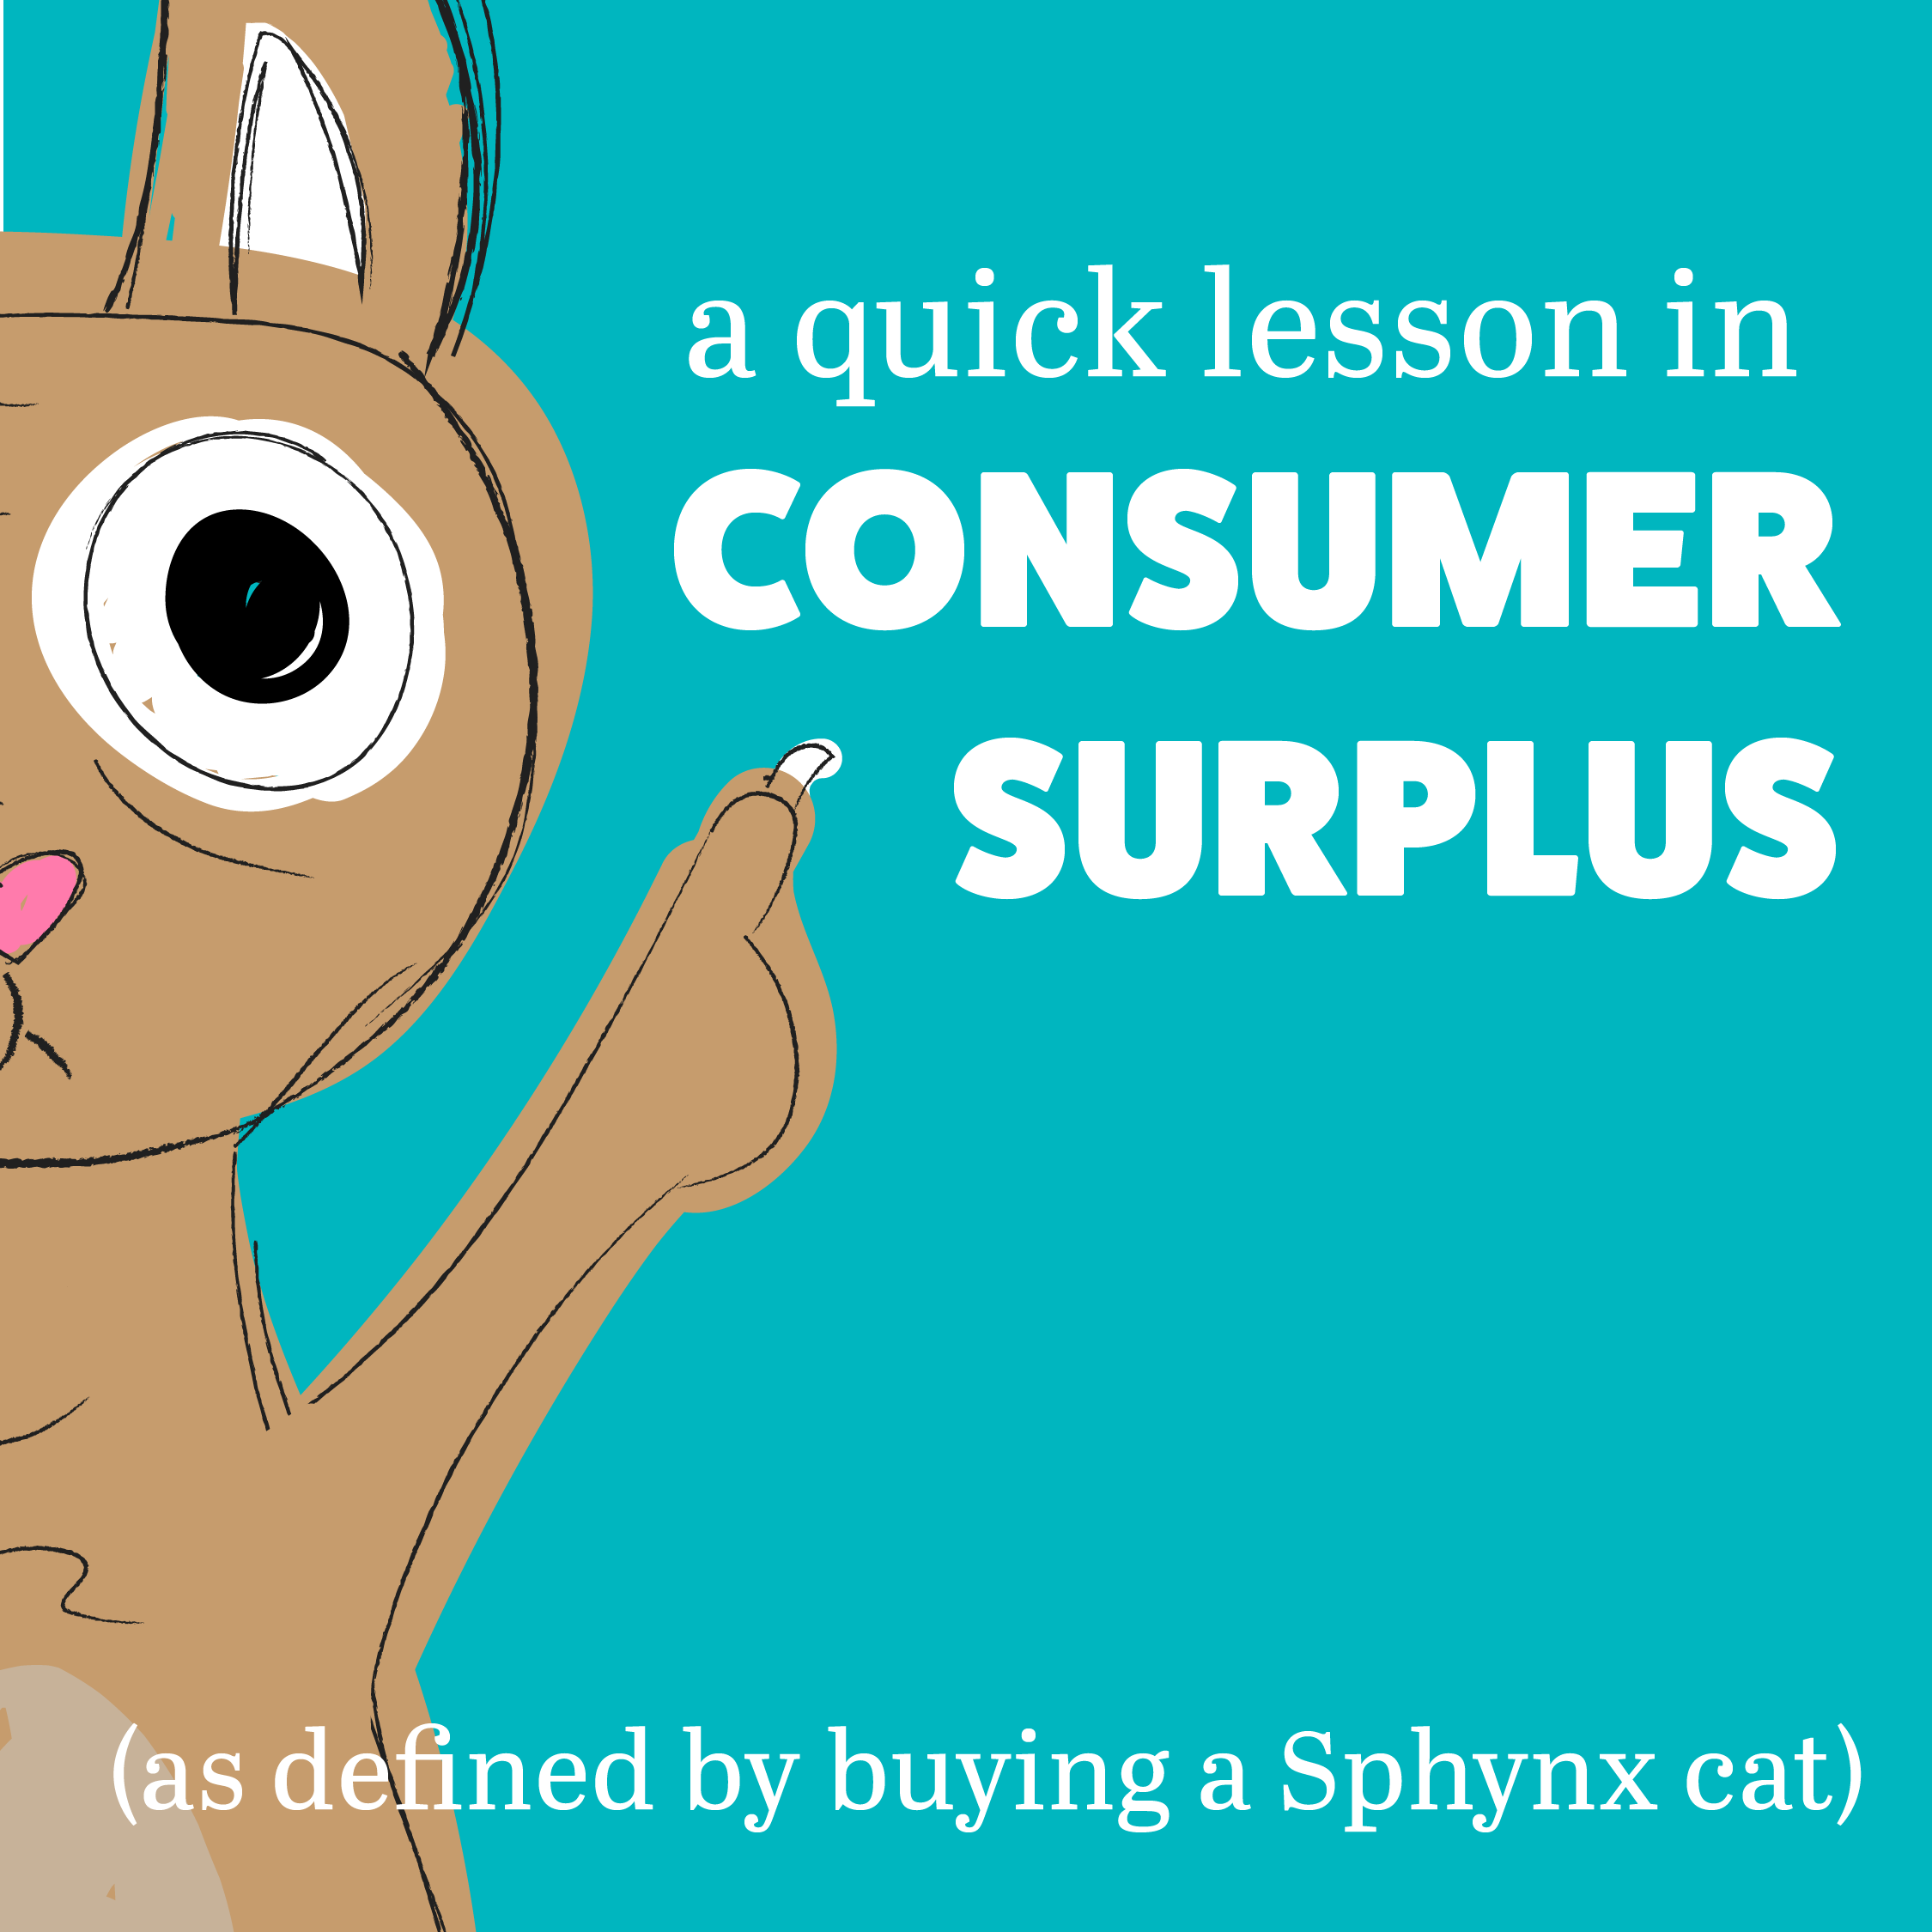 Learn more about consumer surplus, as defined by buying a Sphynx cat,  here .